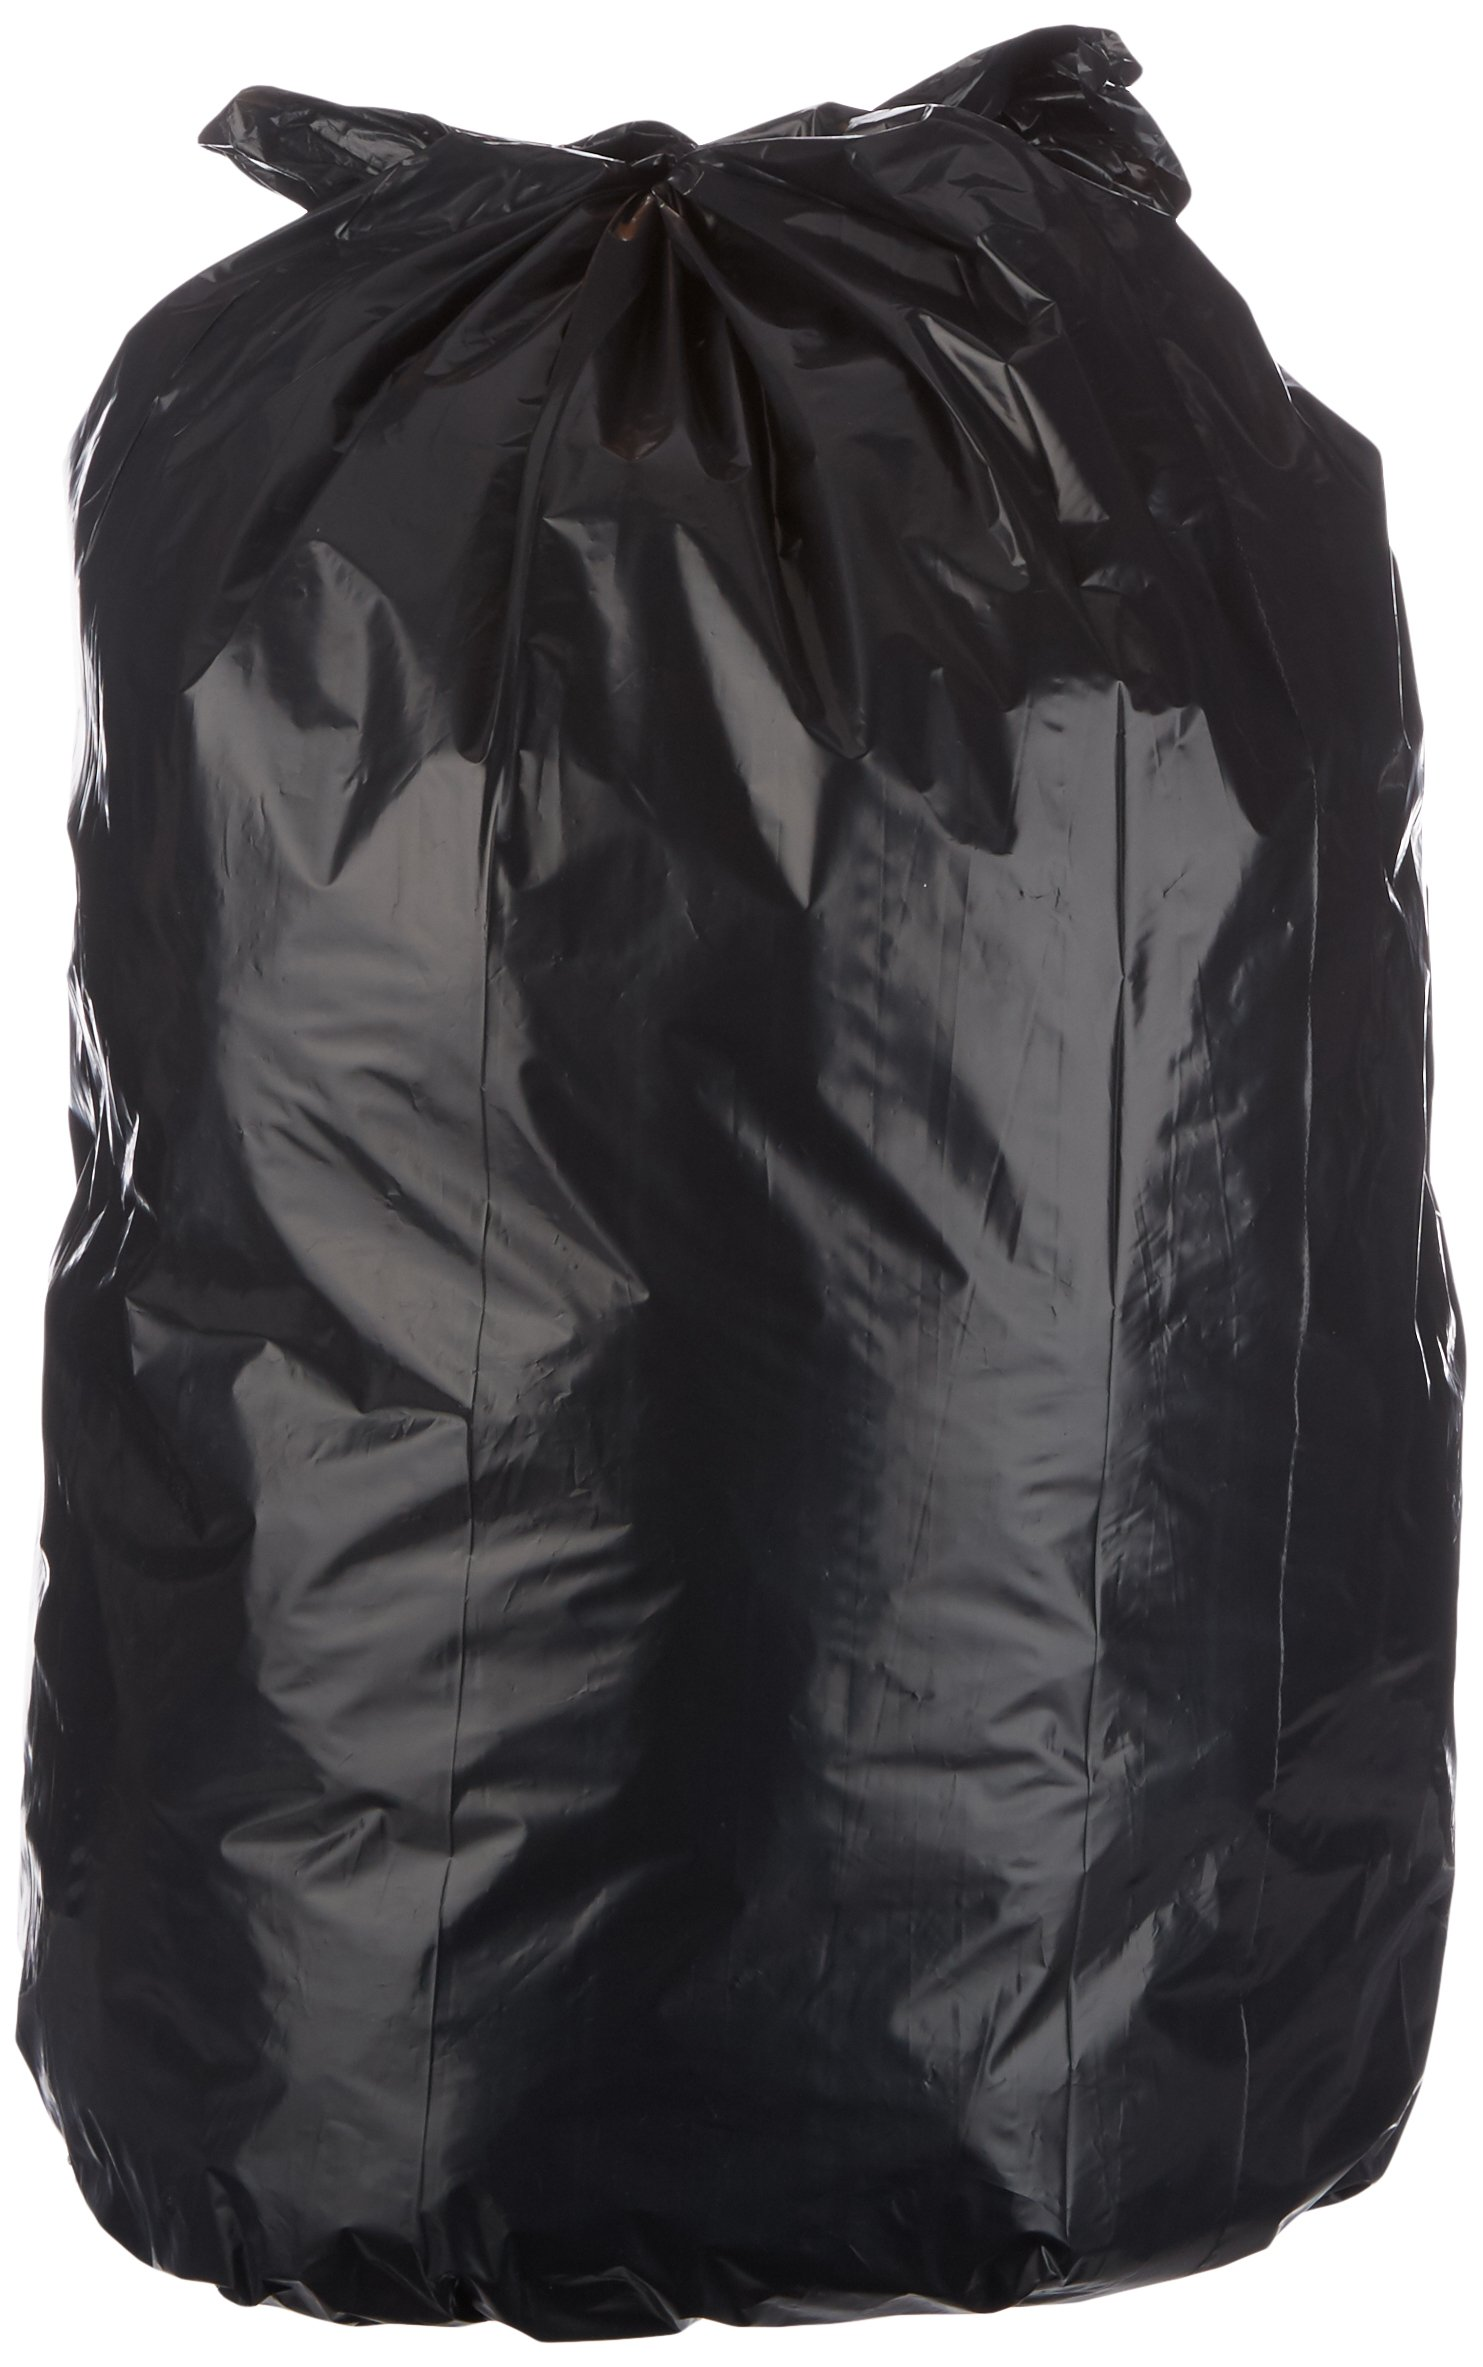 AmazonBasics 23 Gallon Slim Trash Can Liner Bag, 1.6 mil, Black, 250-Count by AmazonBasics